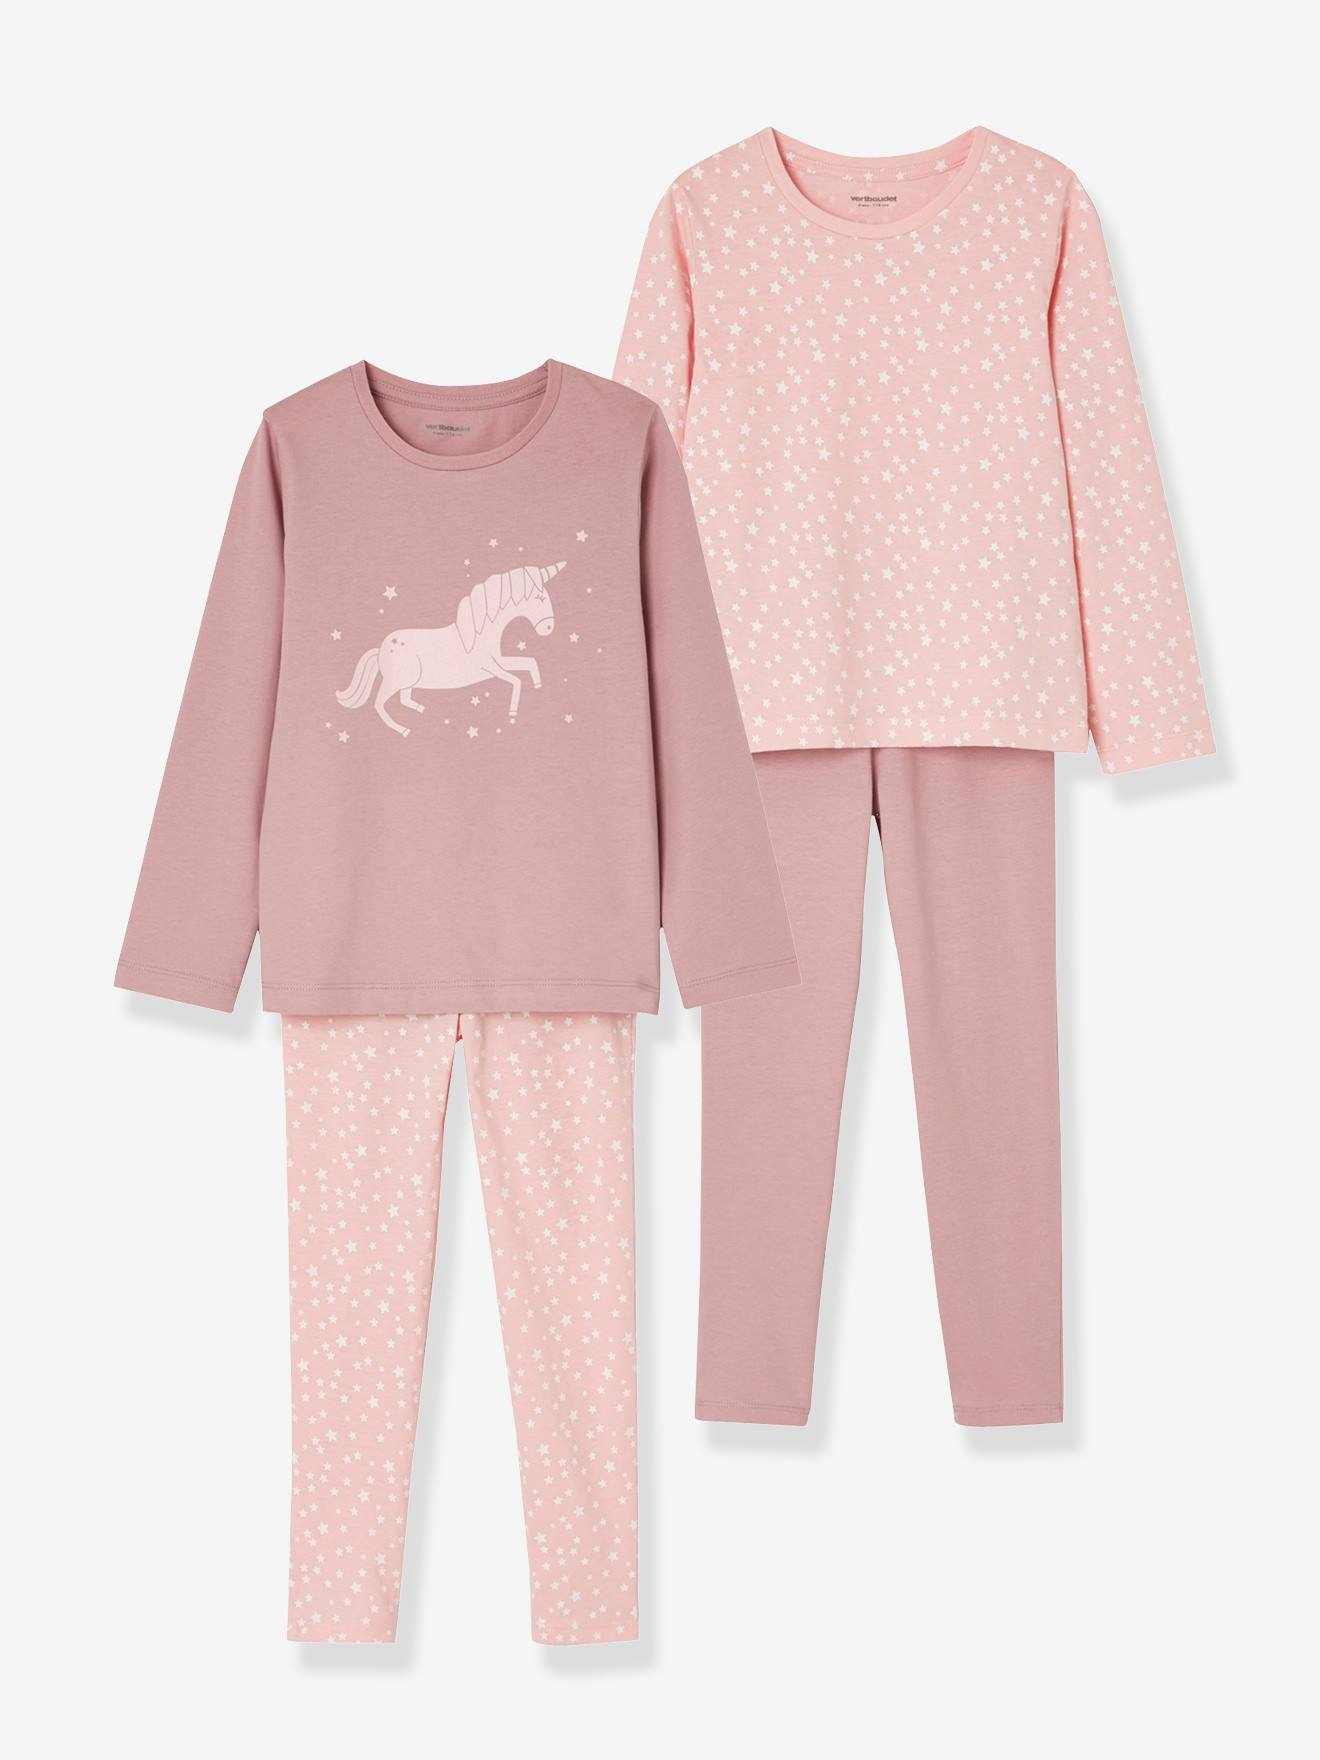 Girls  Pack of 2 Mix   Match Pyjamas - pink dark 2 color multicol or ... c7cd6a89f37a3